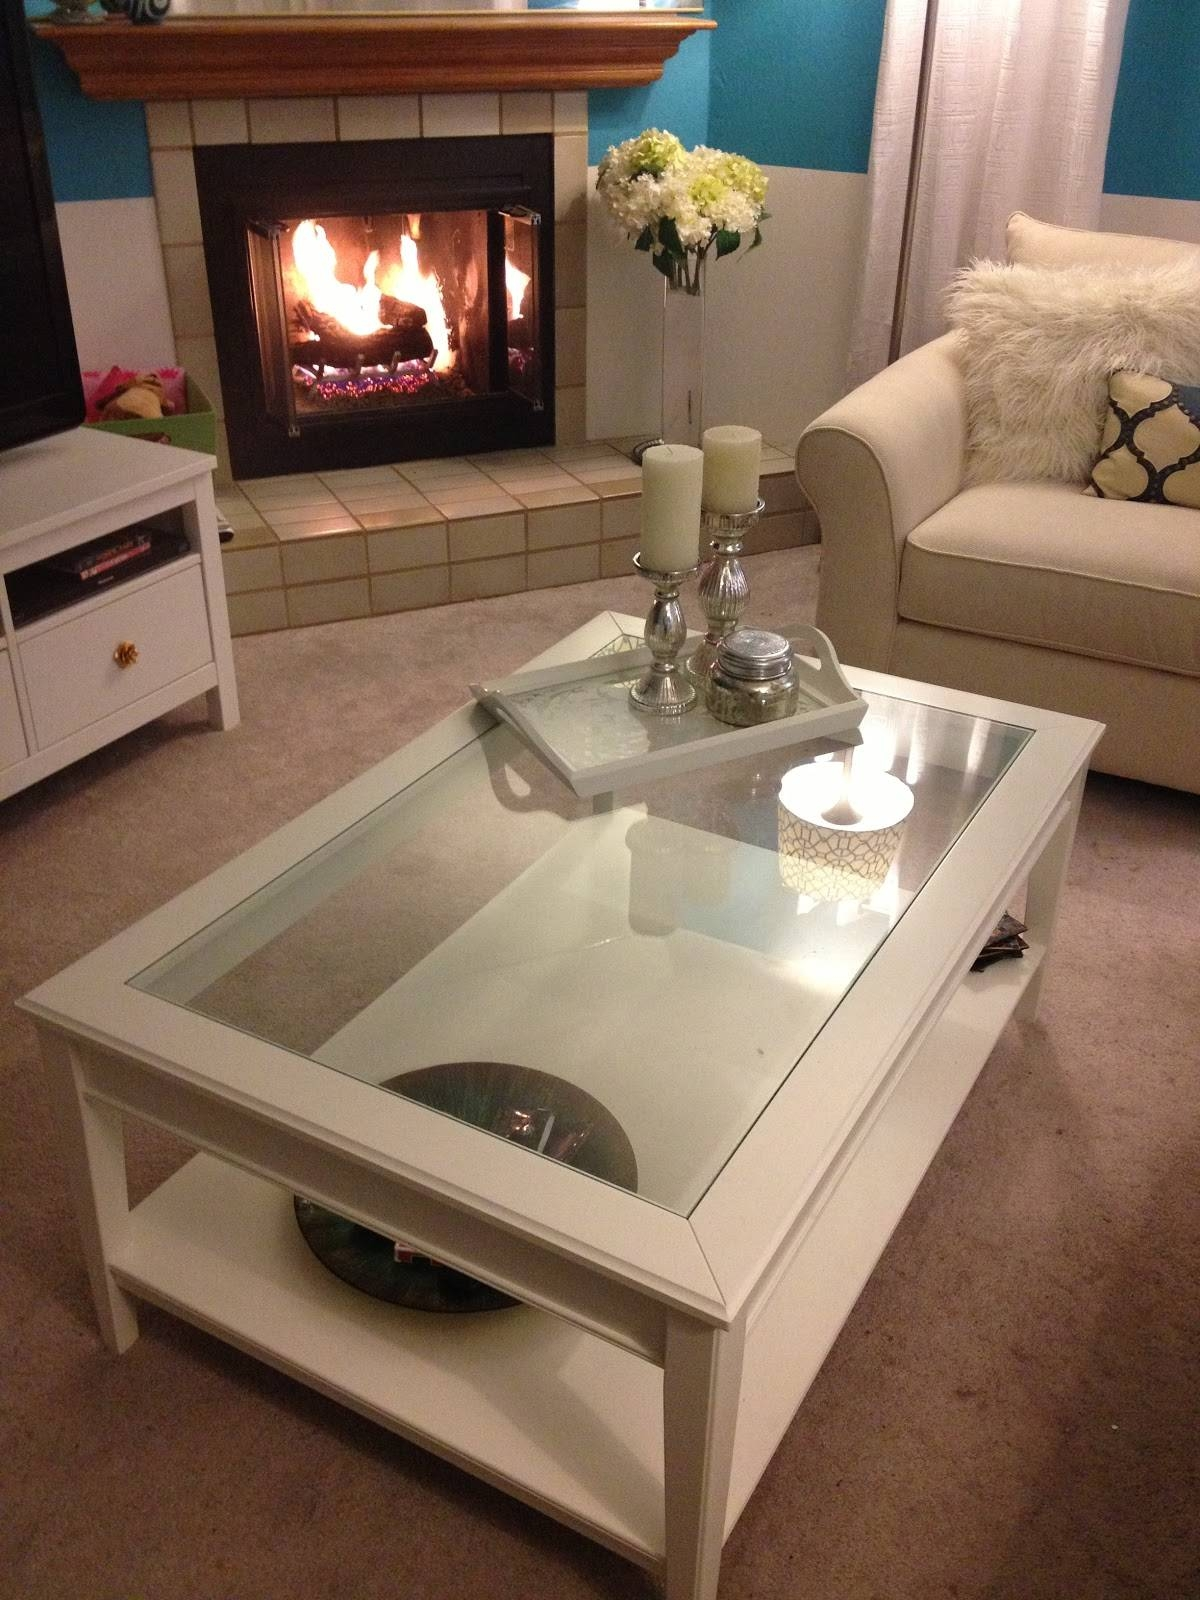 Mirrored Tray For Coffee Table | Idi Design Inside Coffee Tables Mirrored (View 23 of 30)